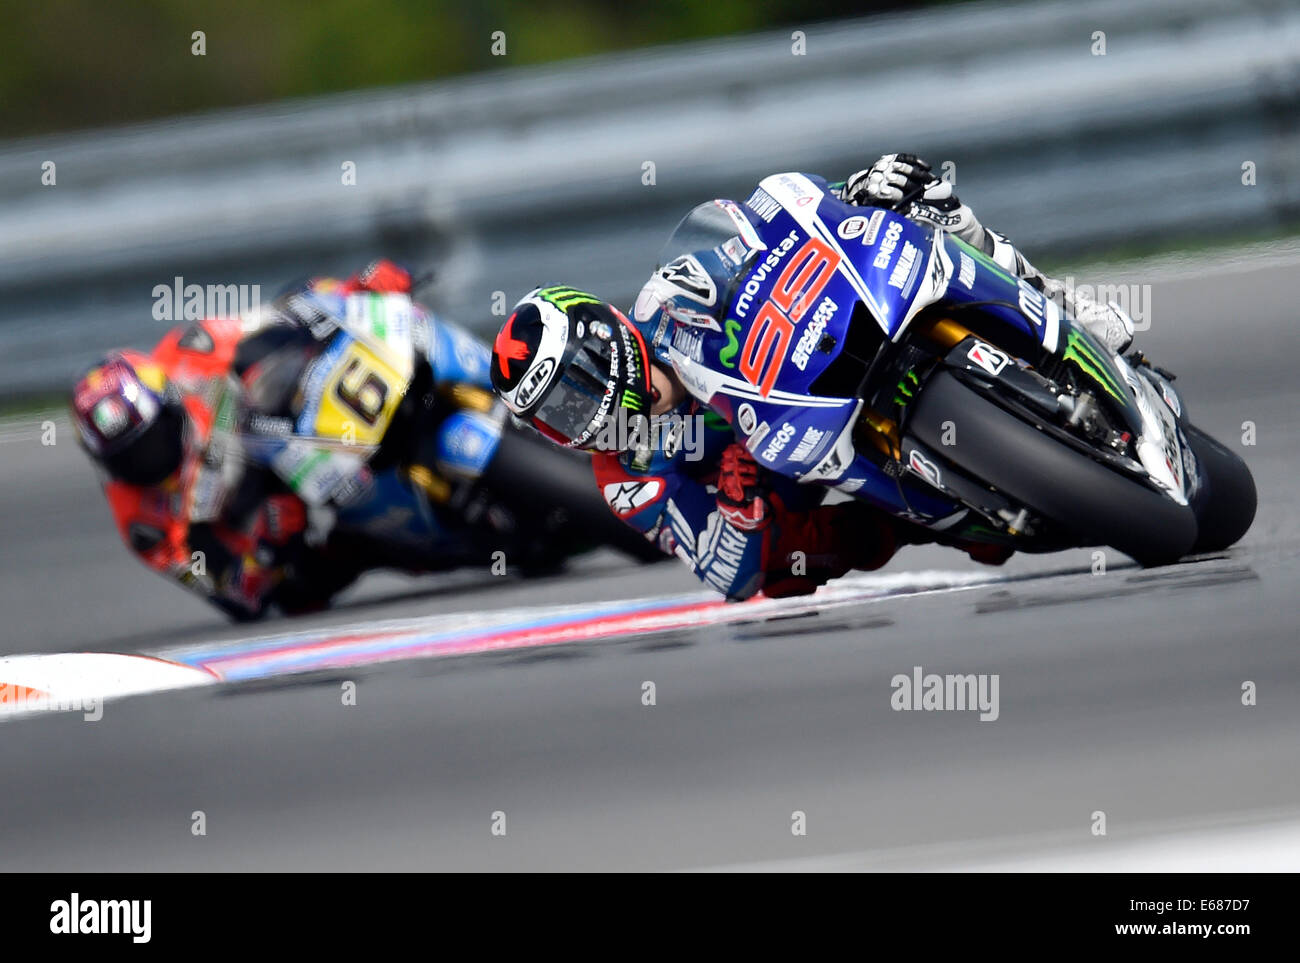 stefan-bradl-of-germany-left-and-jorge-l